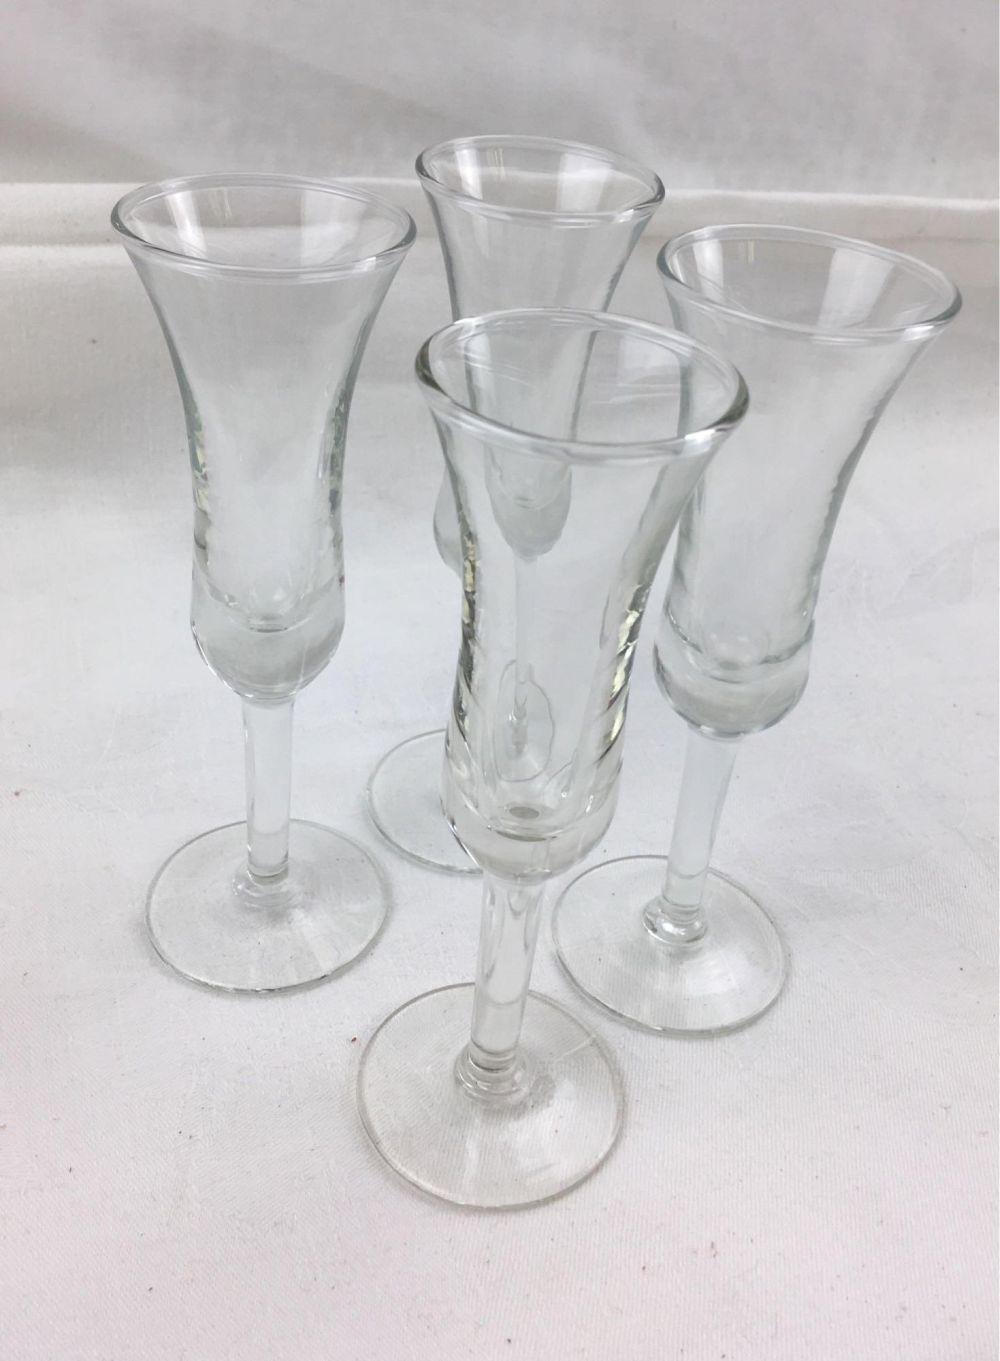 Lot 160: Set of 4 Stemmed Cordial/Sherry Glasses, by Libby